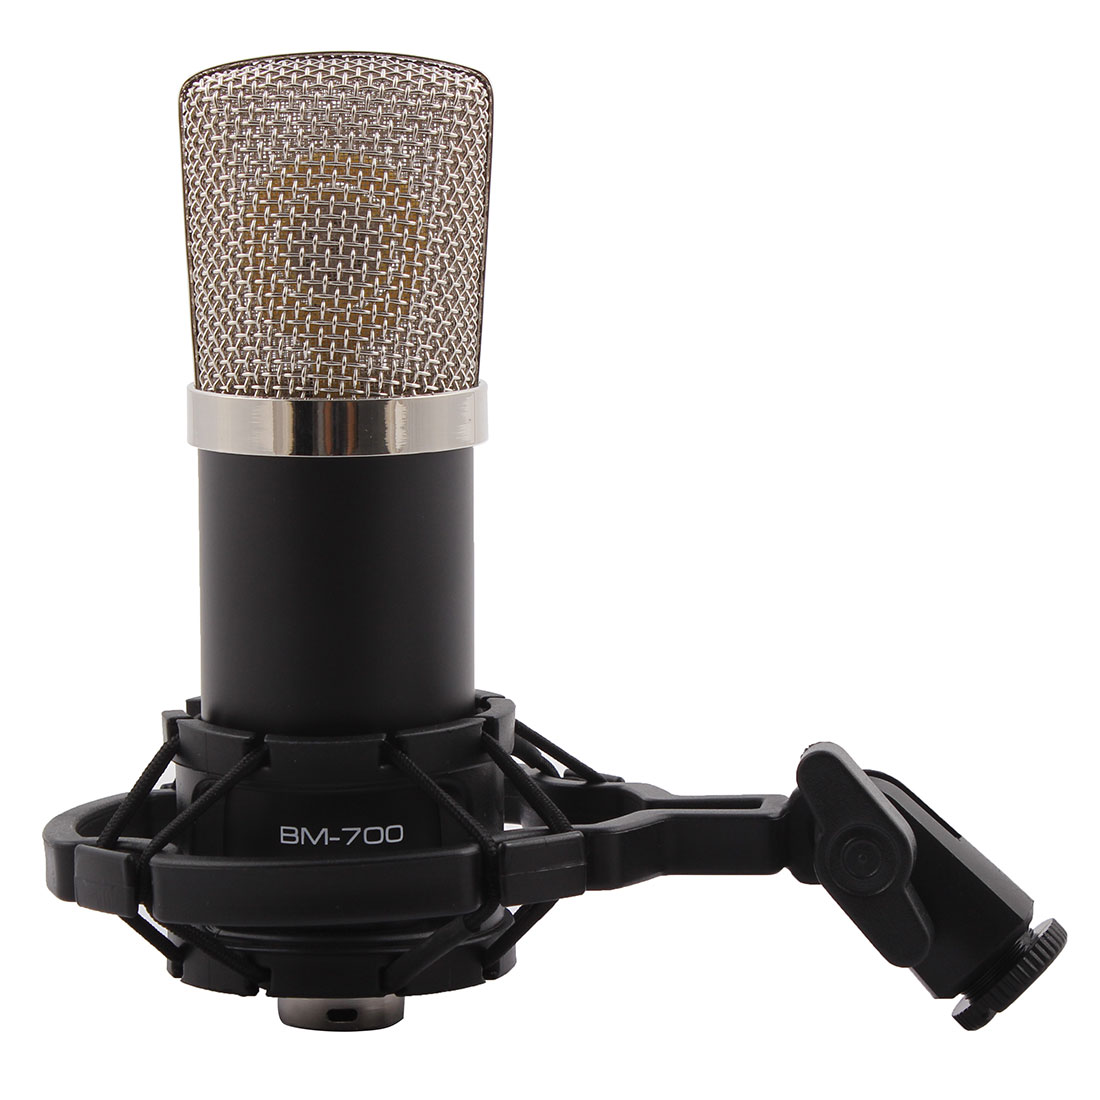 BM-700 3.5mm Wired Sound Recording Microphone Black for Karaoke Singing